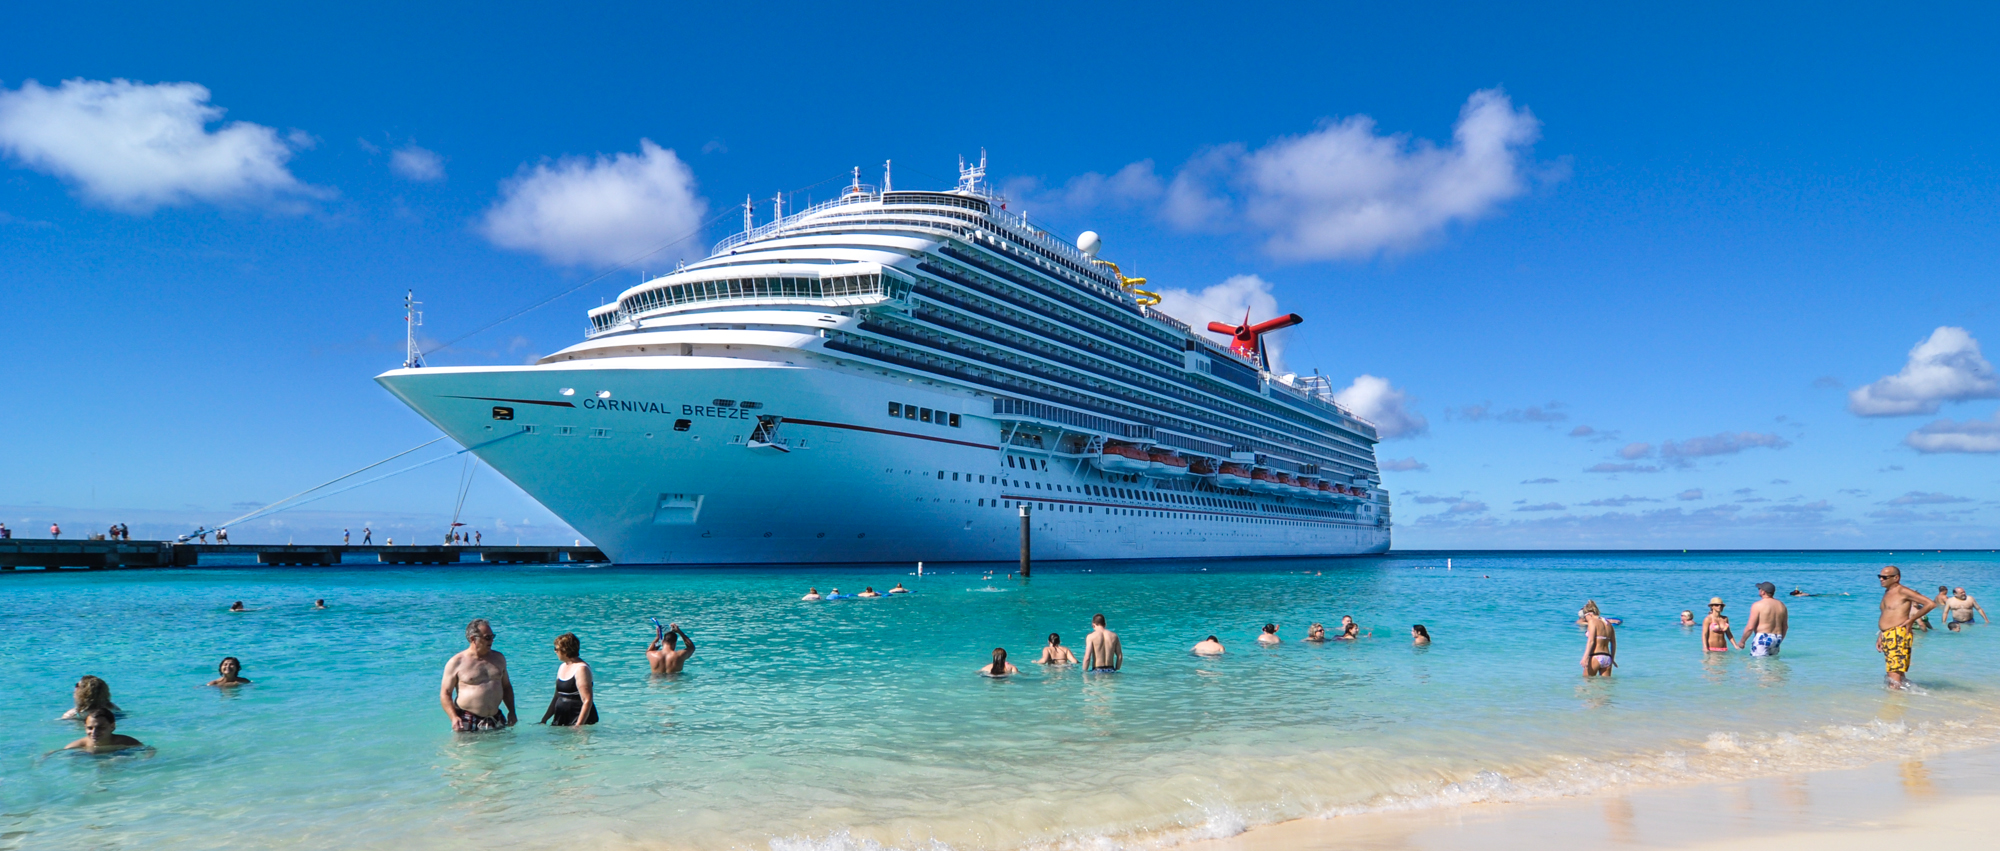 Carnival Cruise Lines Carnival Breeze Review  Reviewedcom Cruises